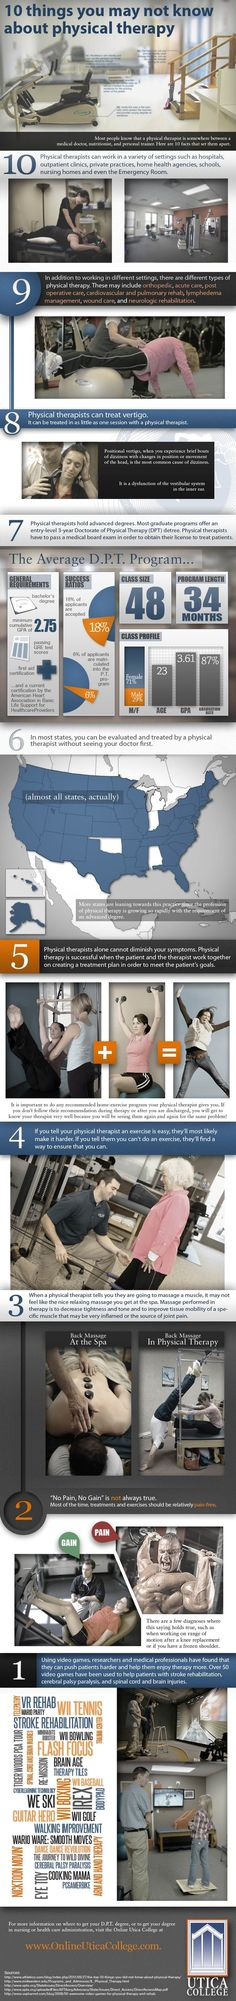 10 things you may not know about physical therapy - a good learning tool for those new to PT. I agree with everything except for the 2.75 GPA; that's ridiculous. The average GPA is over 3.5, and it's harder to get into PT school than med school.